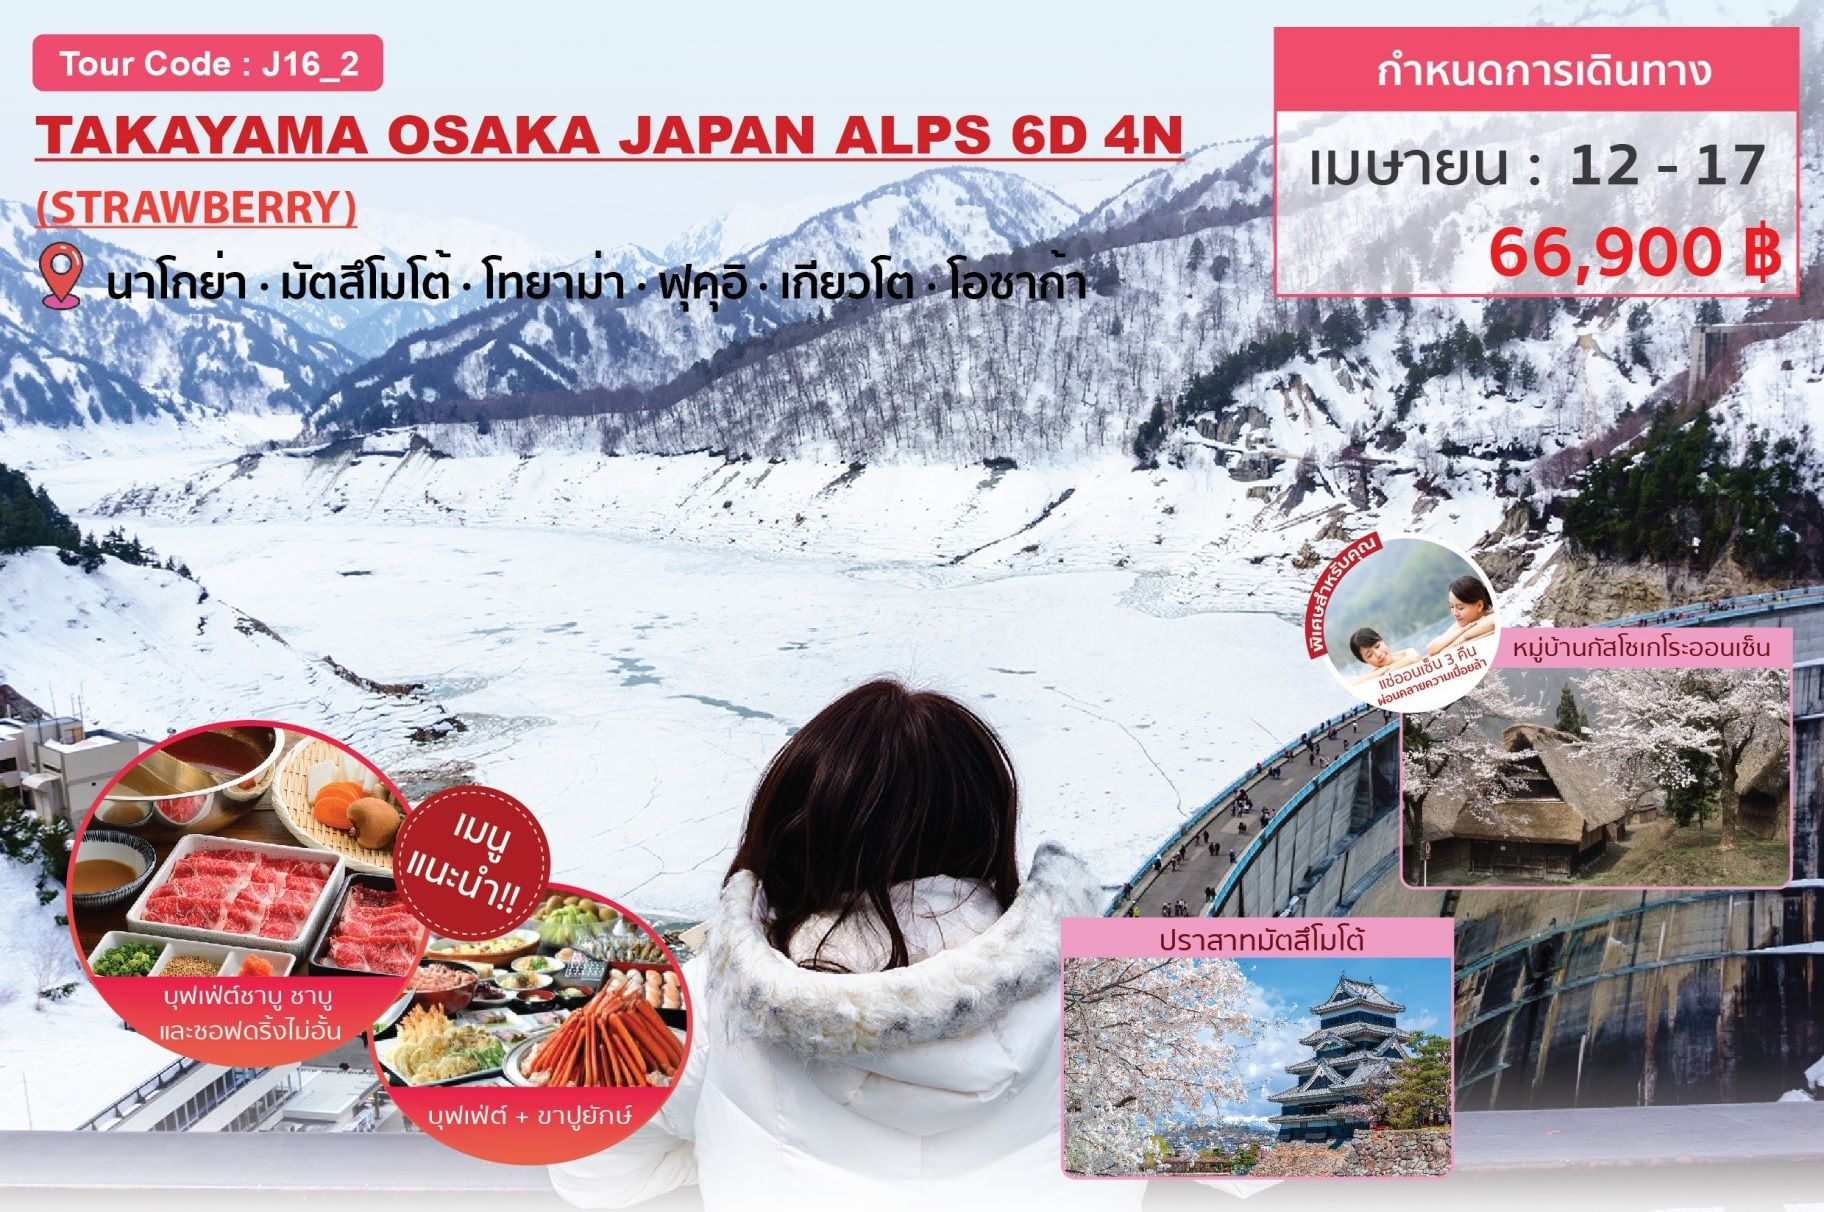 ทัวร์ญี่ปุ่น-TAKAYAMA-OSAKA-JAPAN-ALPS-STRAWBERRY-6D4N-(12-17APR20)(J16_2)